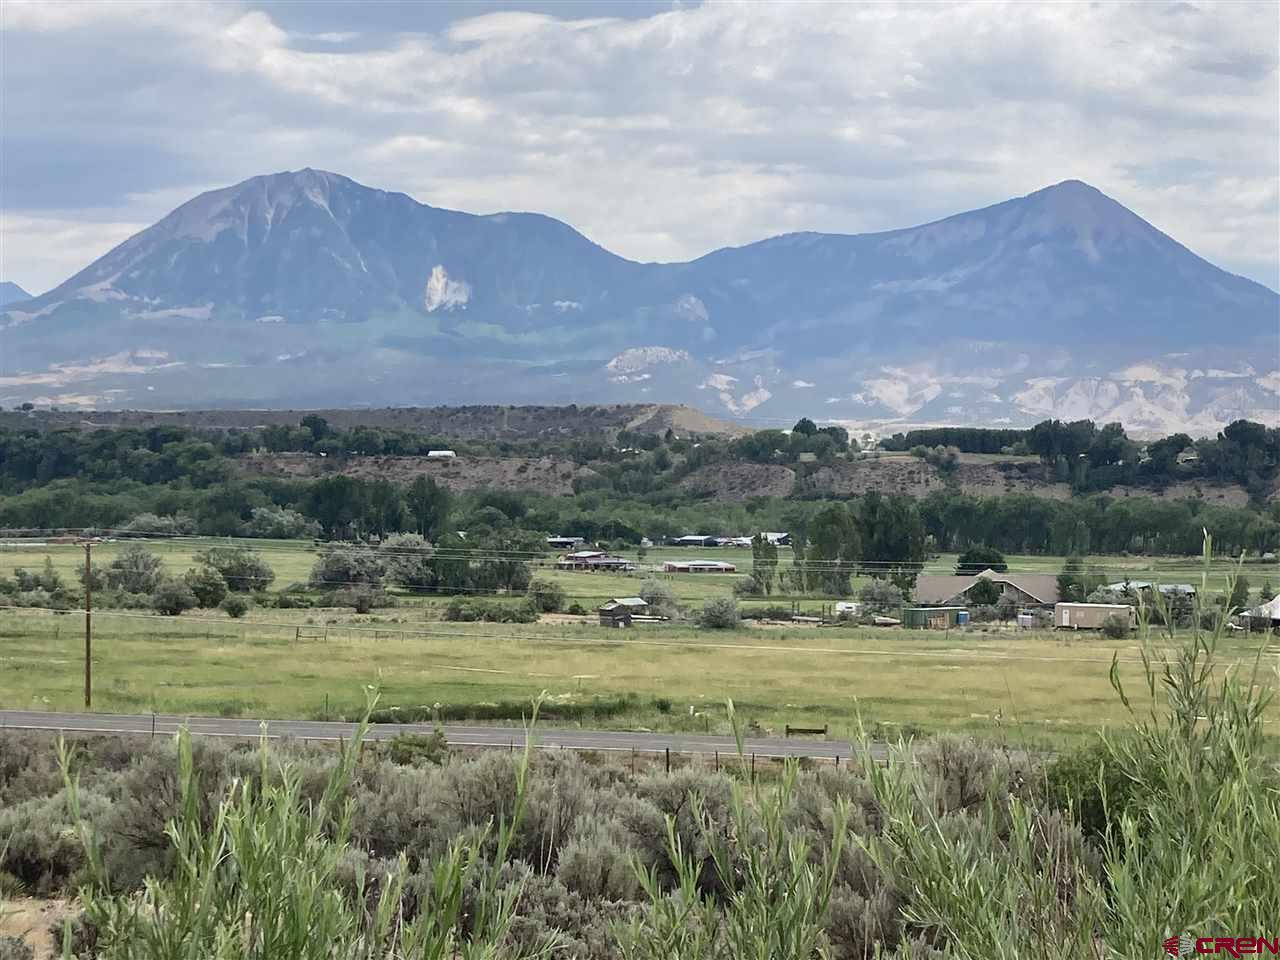 Beautiful views of the west Elks from this 8.5 acre parcel.  Farmers Ditch flows lazily through the middle of the property creating a lush, green garden like setting.  Build up on the hill behind the ditch and look out over the valley to the mountains.